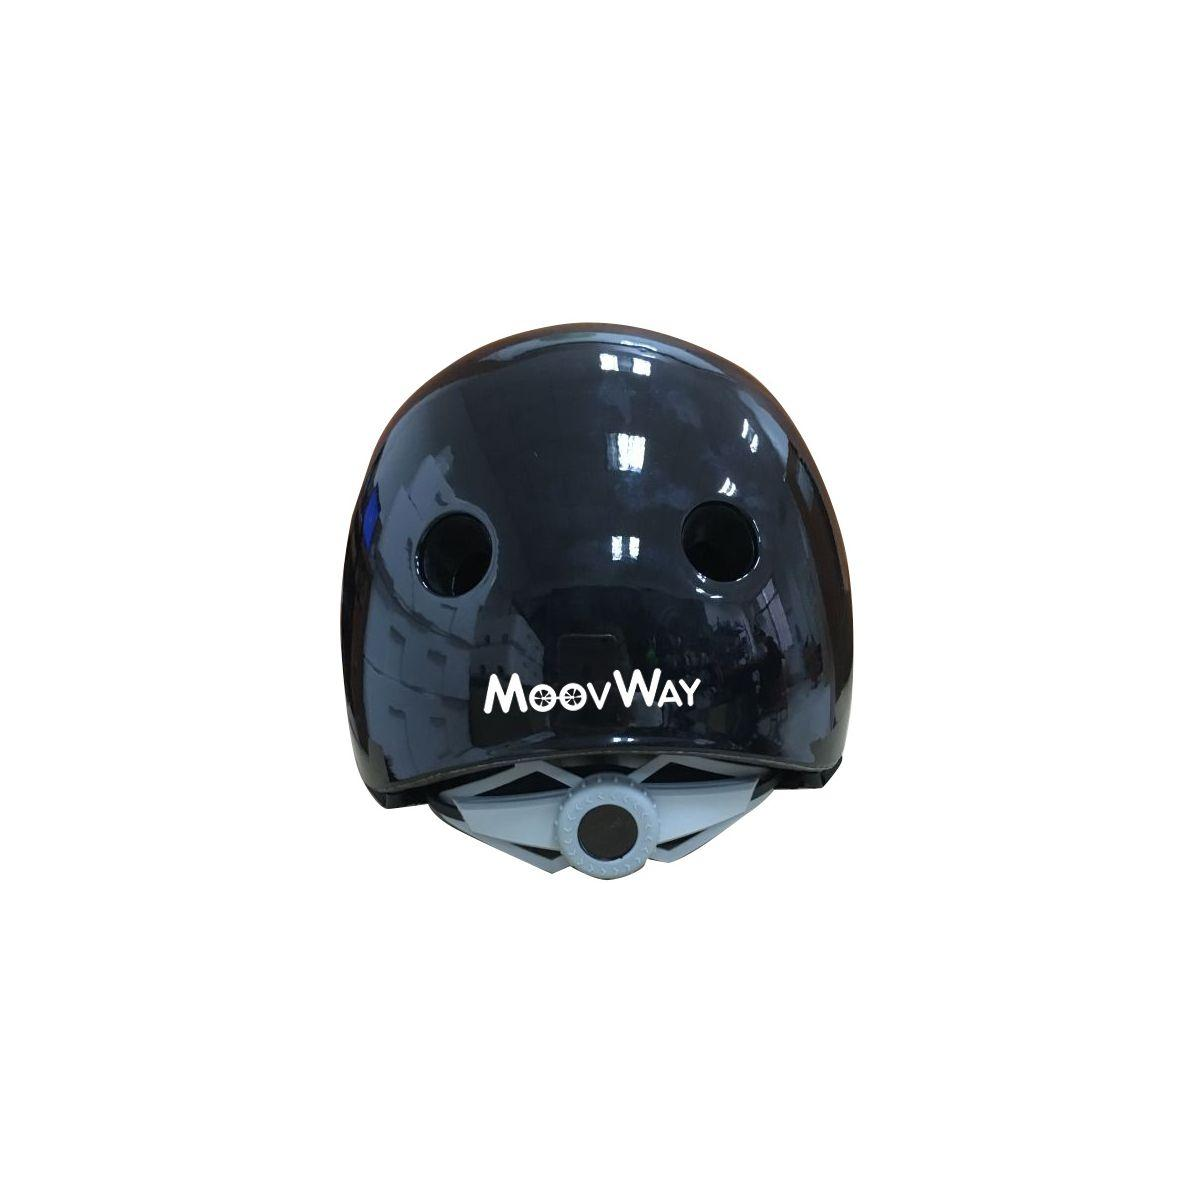 Casque moovway noir (photo)